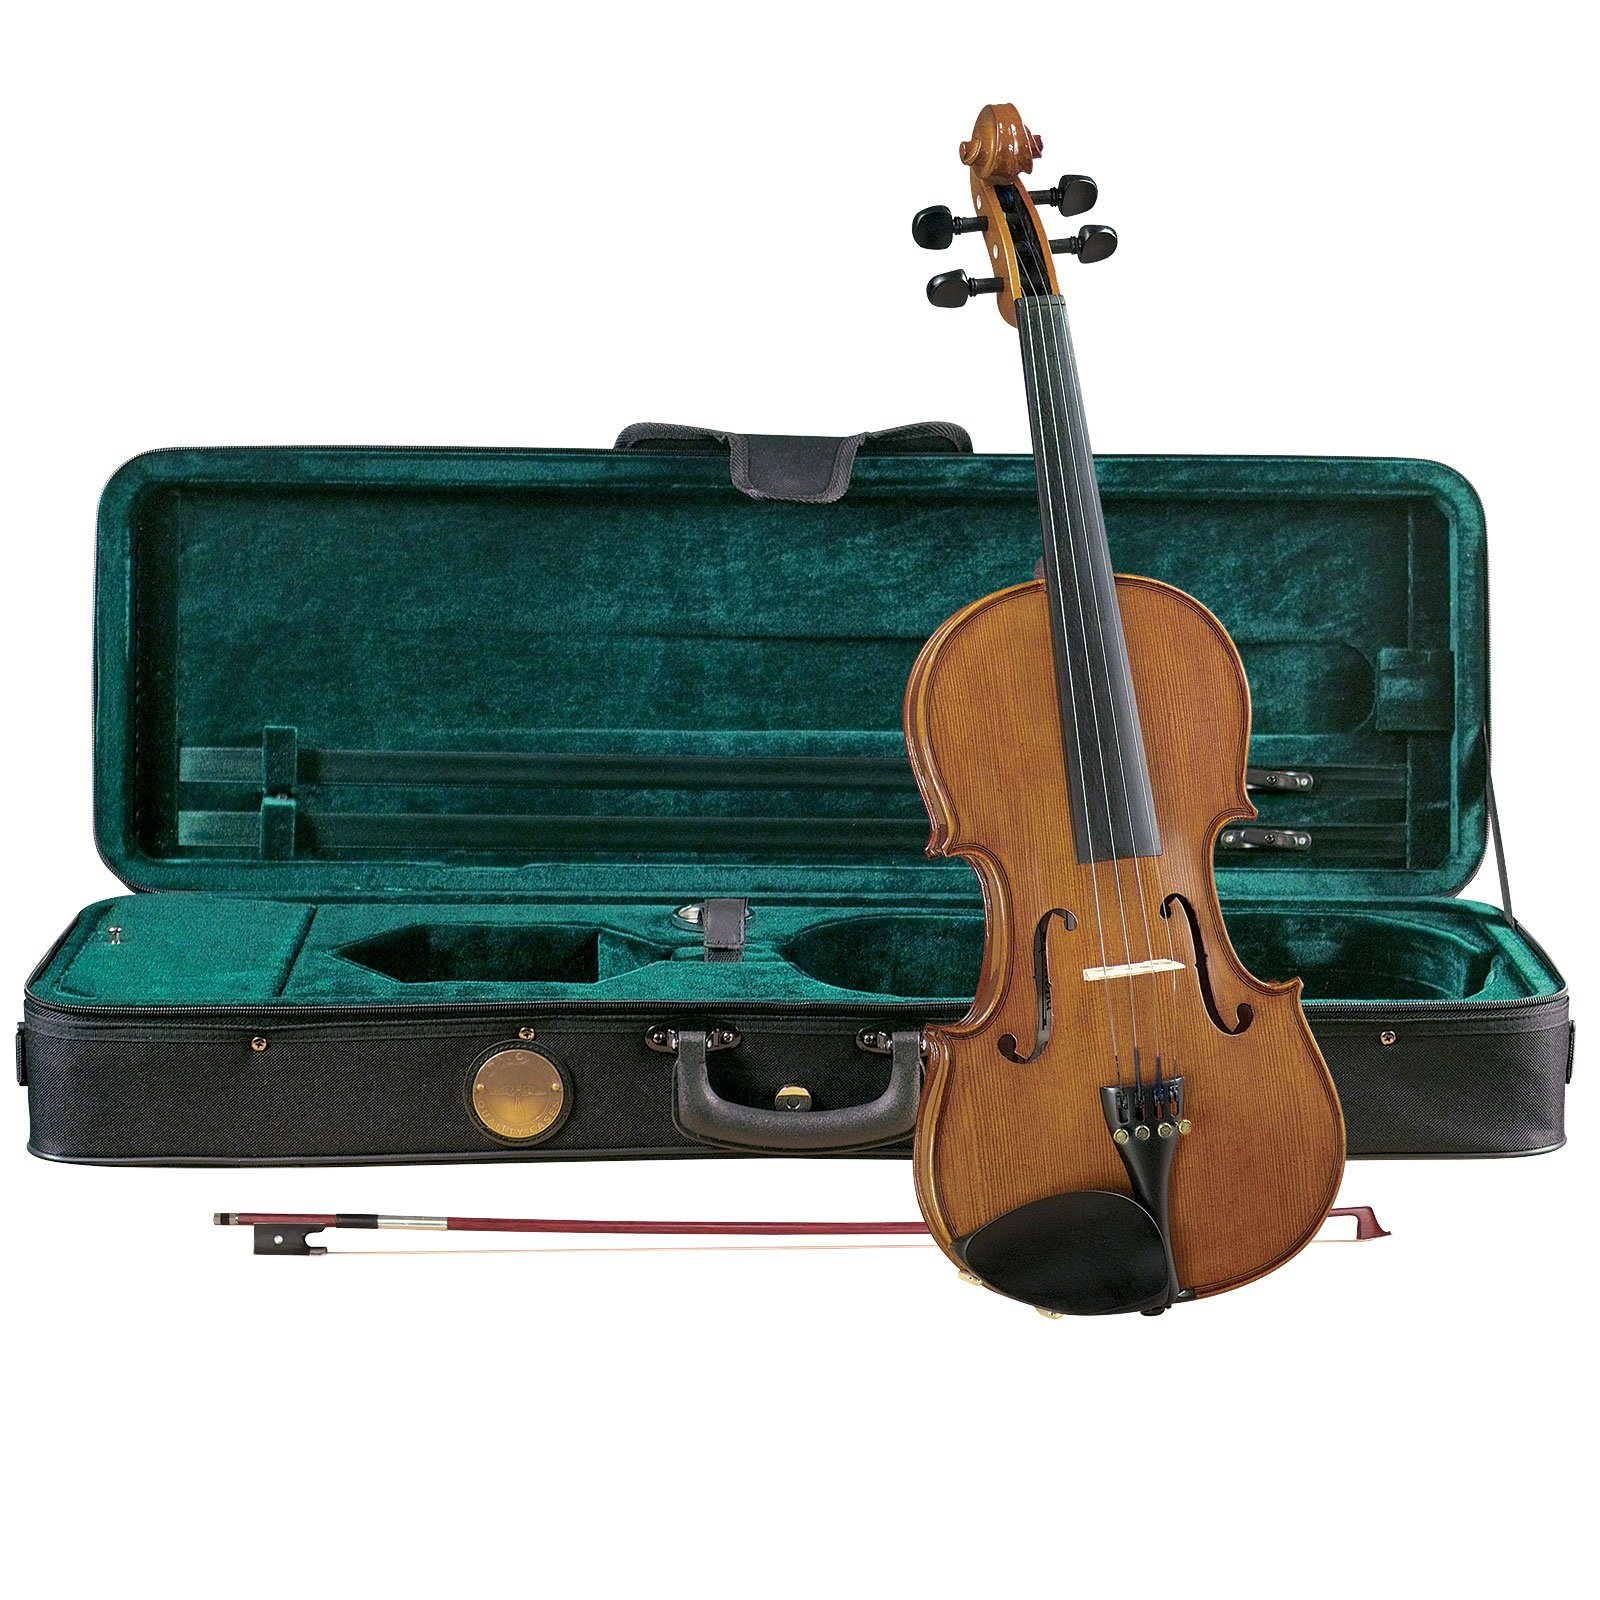 Cremona SV-175 Premier Student Violin Outfit - 4/4 Size by Cremona